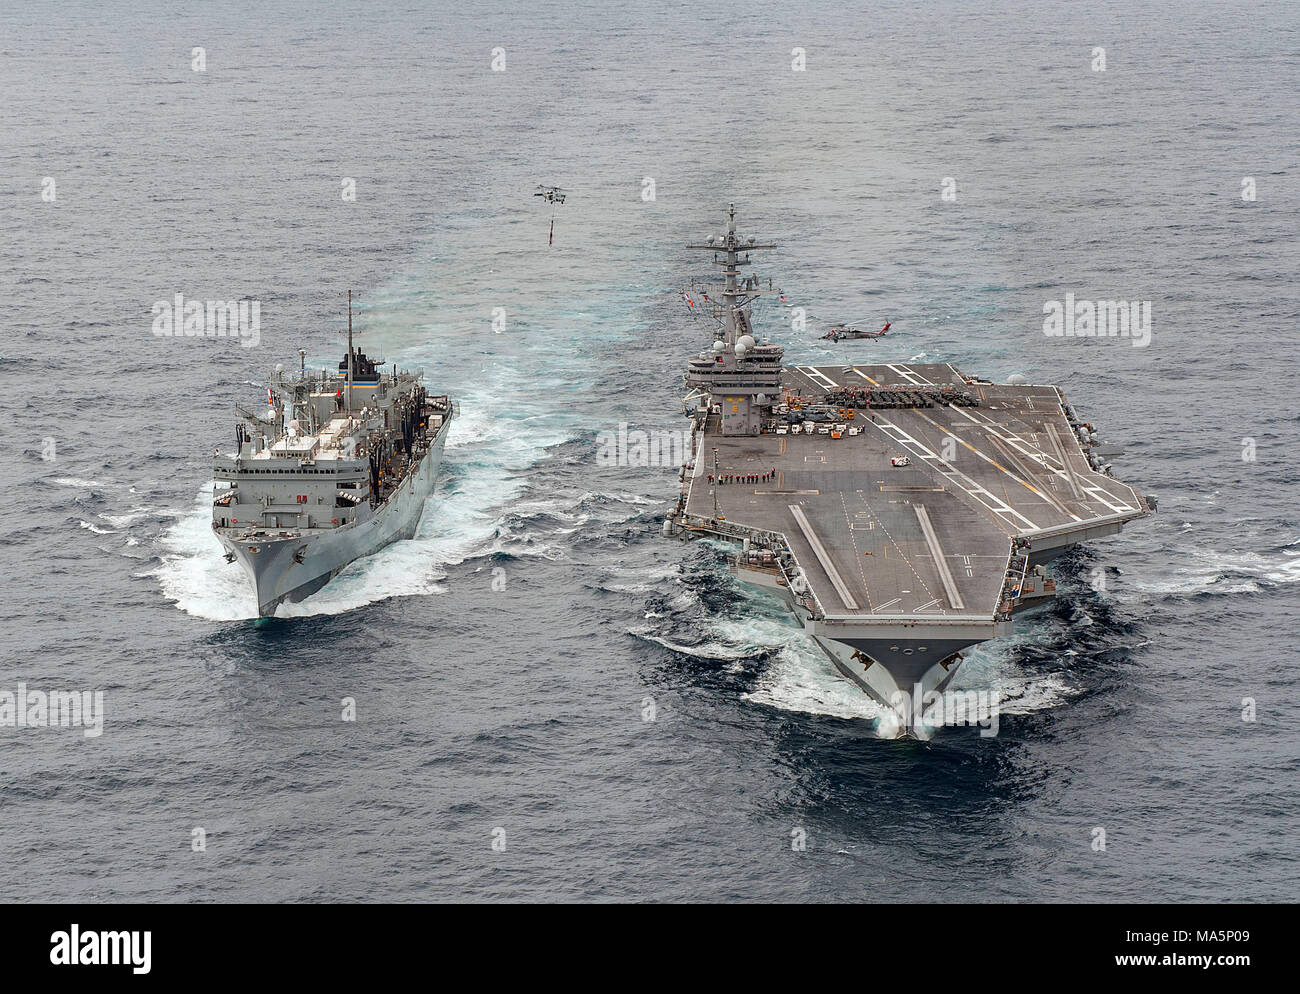 180327-N-JC445-0575 ATLANTIC OCEAN (March 27, 2018) The fast combat support ship USNS Supply (T-AOE 6) sails alongside the aircraft carrier USS George H.W. Bush (CVN 77) during a replenishment-at-sea. The ship is underway conducting sustainment exercises to maintain carrier readiness. (U.S. Navy photo by Mass Communication Specialist 3rd Class Mario Coto) - Stock Image